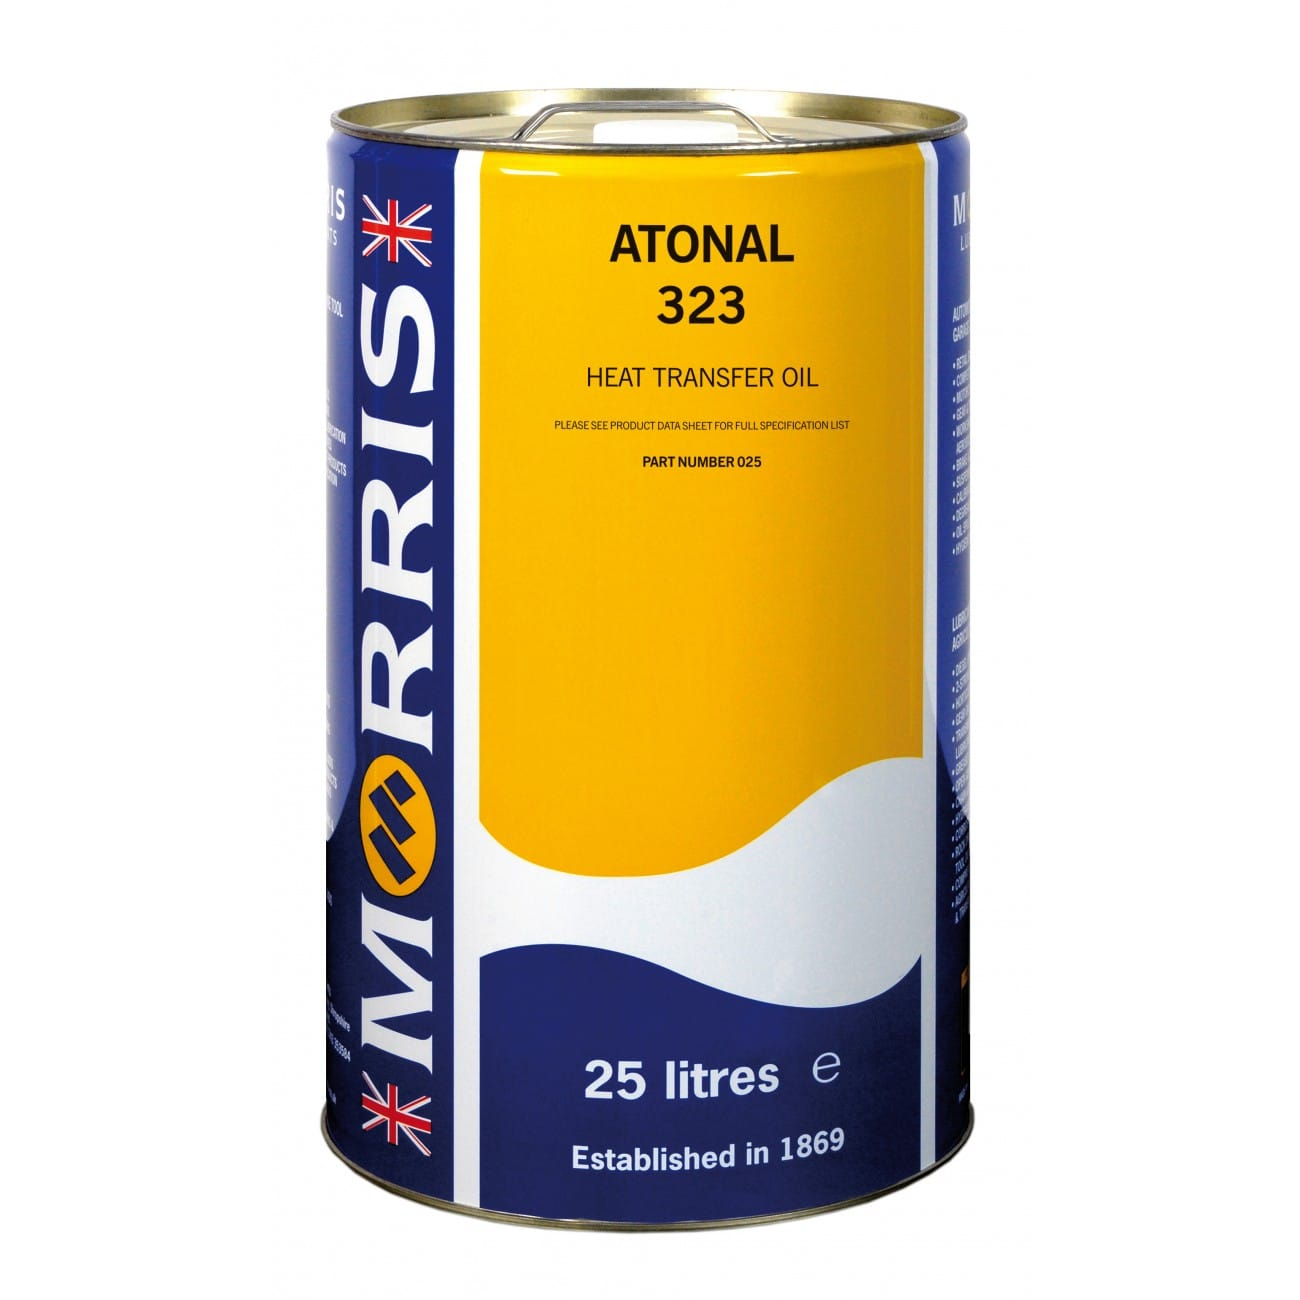 Atonal 323 Heat Transfer Oil